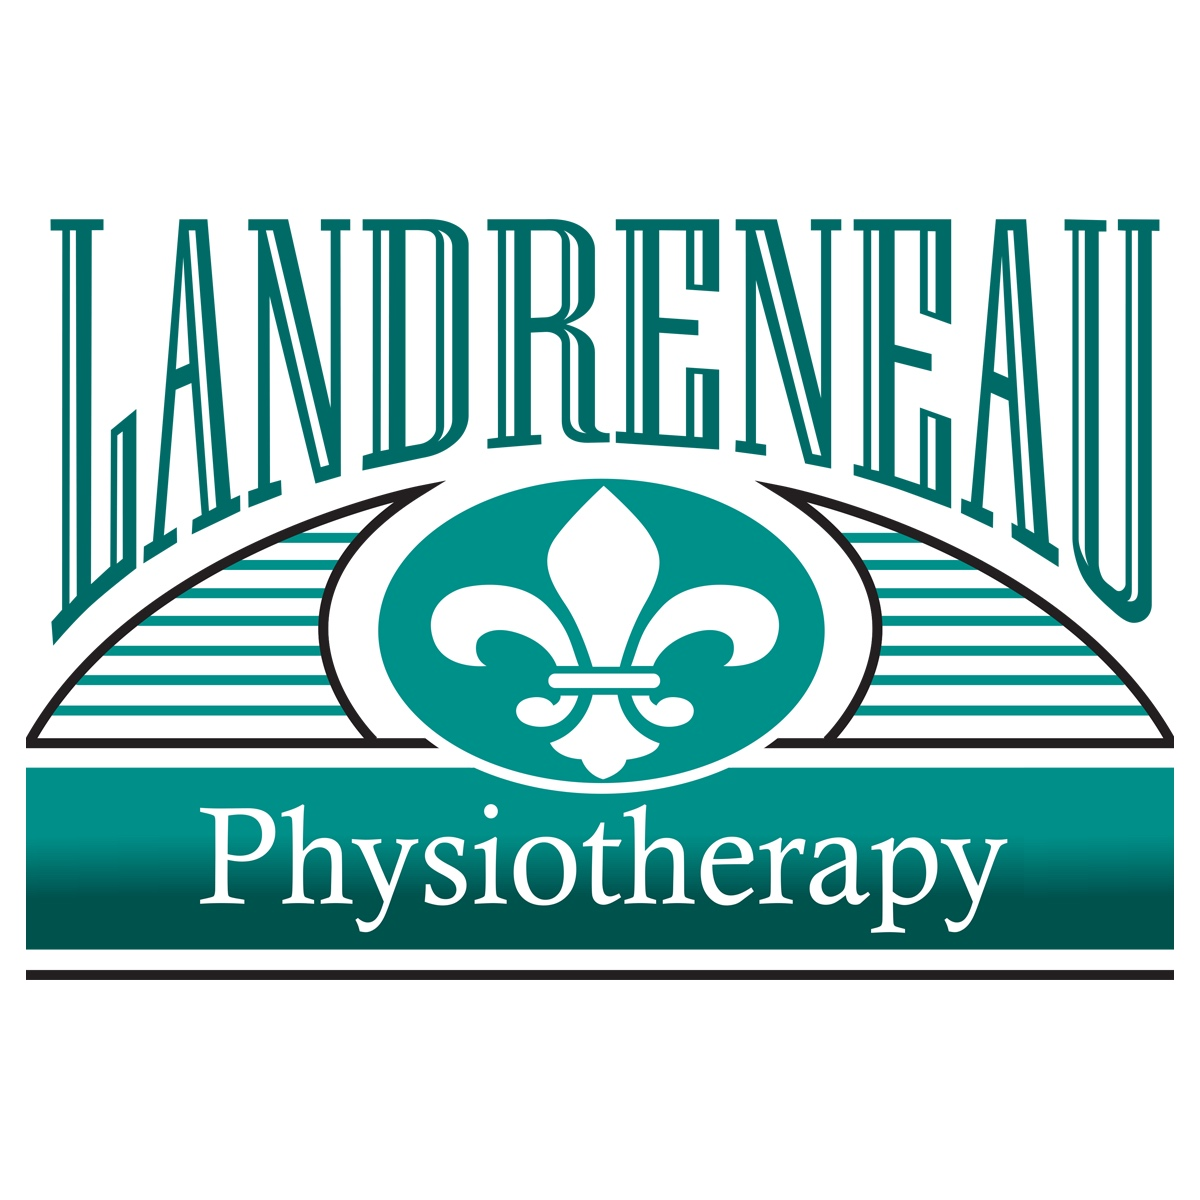 Landreneau Physiotherapy, LLC